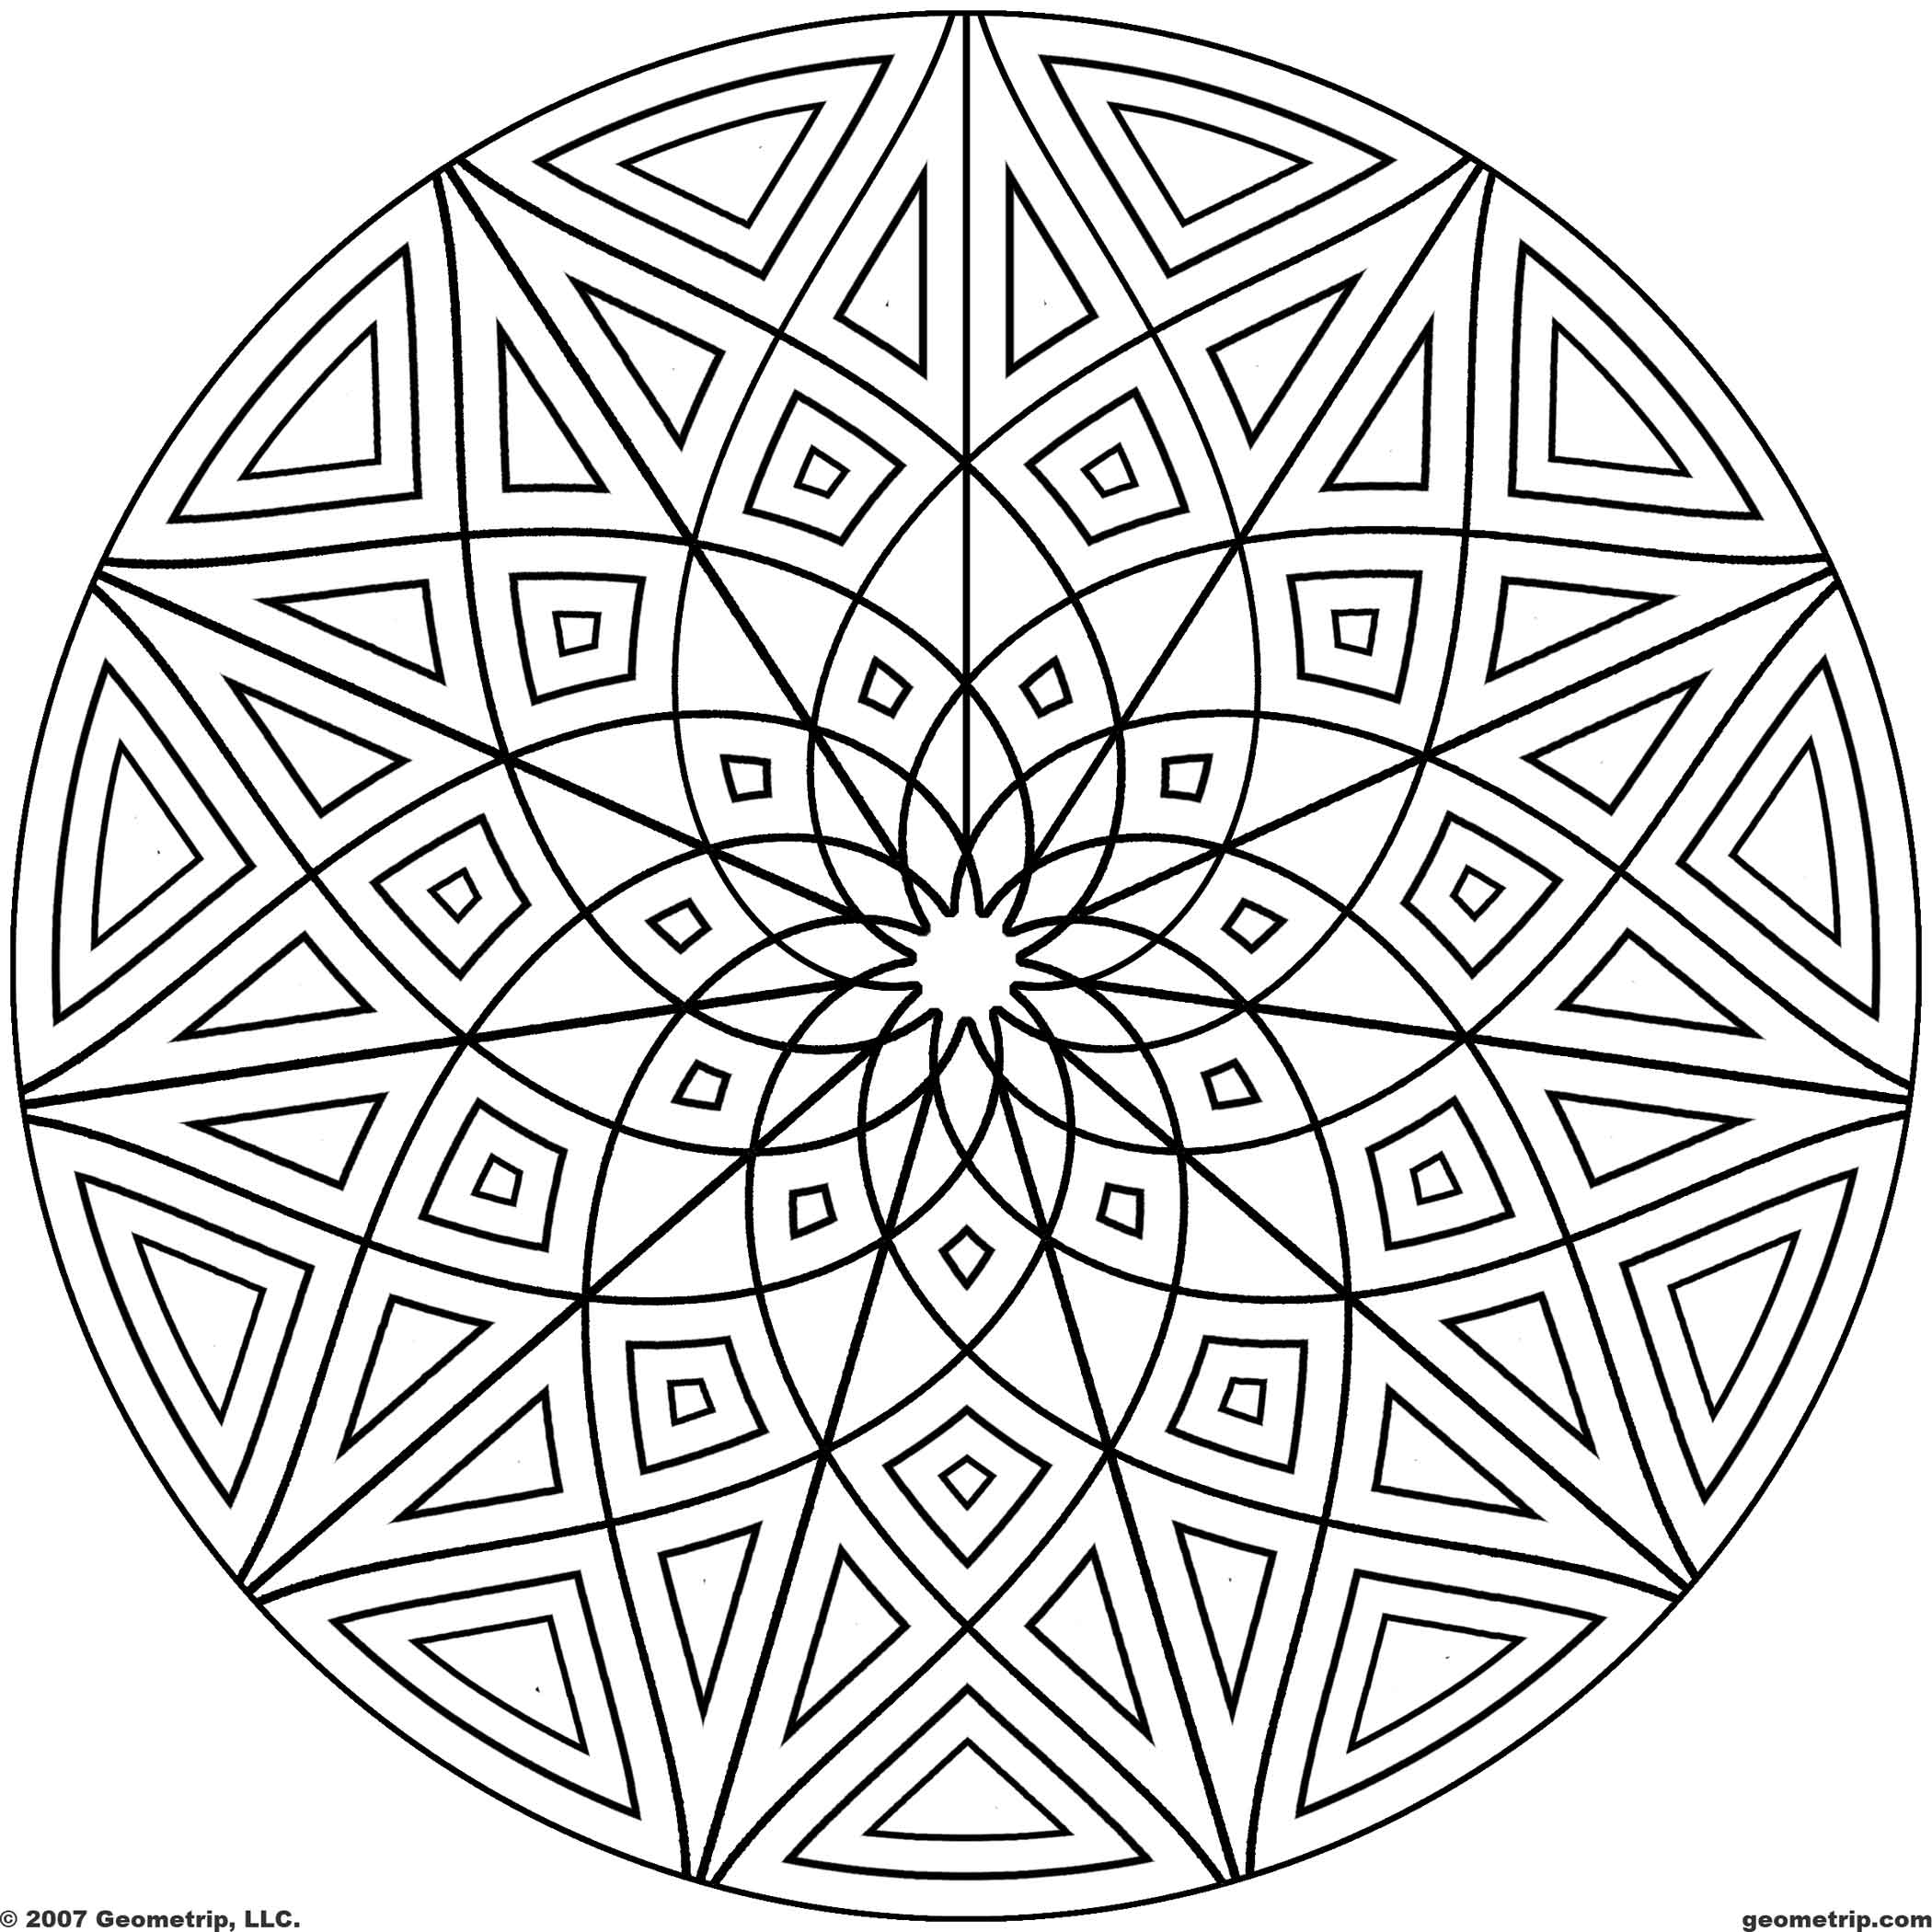 geometric pictures to color get this printable geometric coloring pages for adults pictures color geometric to